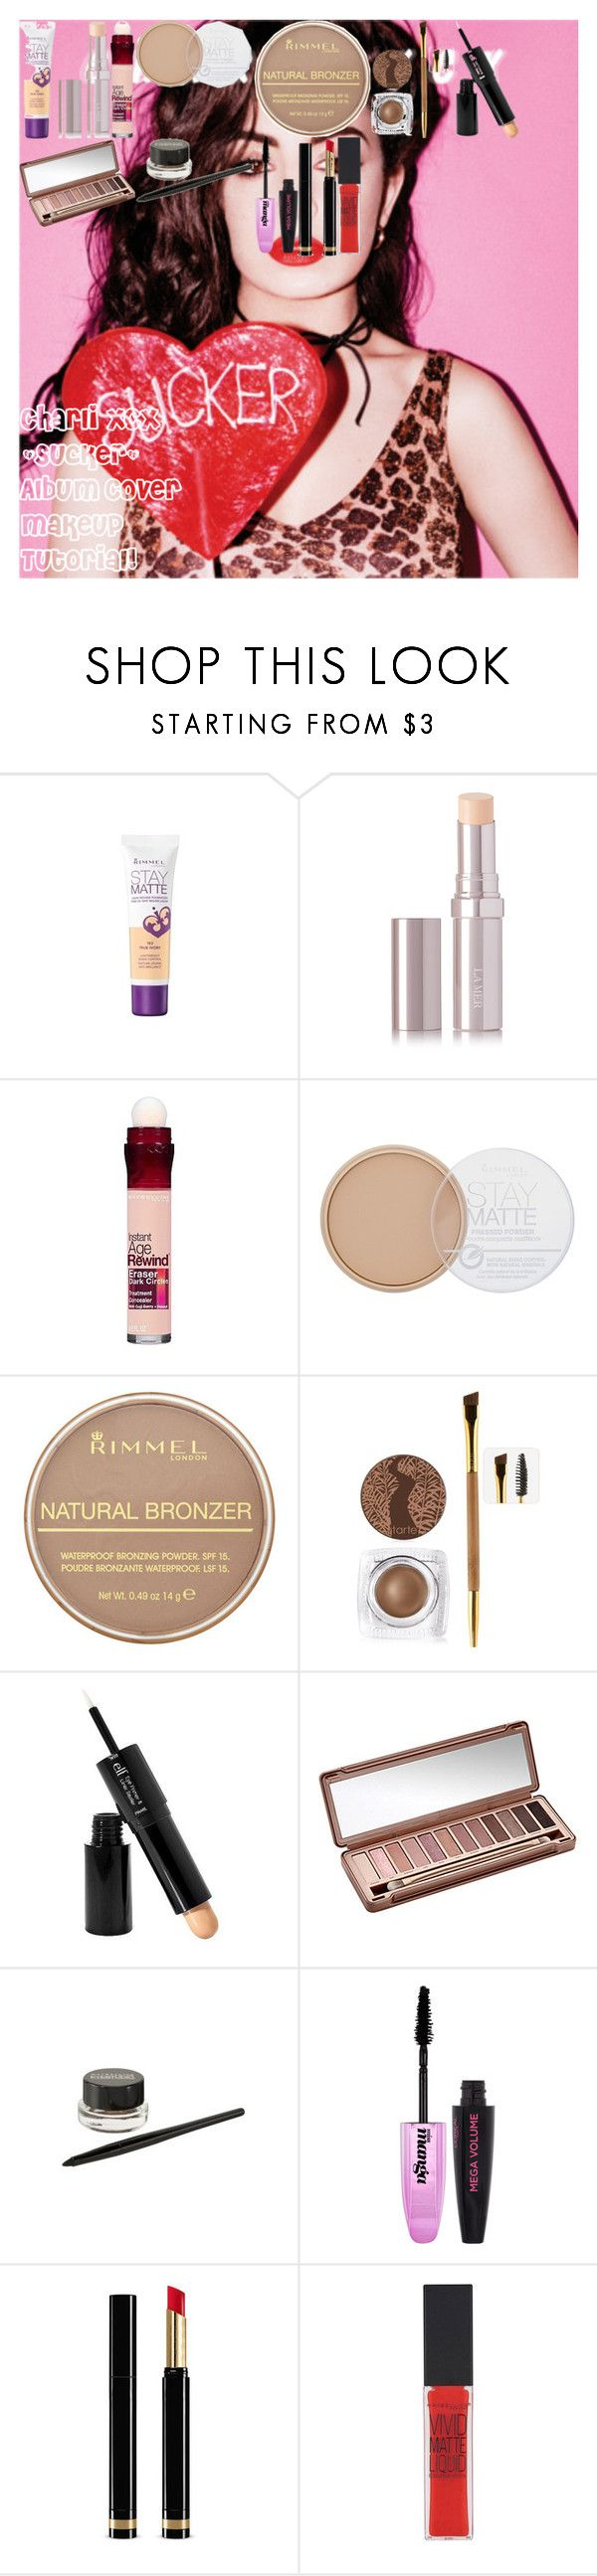 """Charli XCX ""Sucker"" Album Cover Makeup Tutorial!"" by oroartye-1 on Polyvore featuring beauty, Charli, Rimmel, La Mer, Maybelline, tarte, e.l.f., Urban Decay, L'Oréal Paris and Gucci"